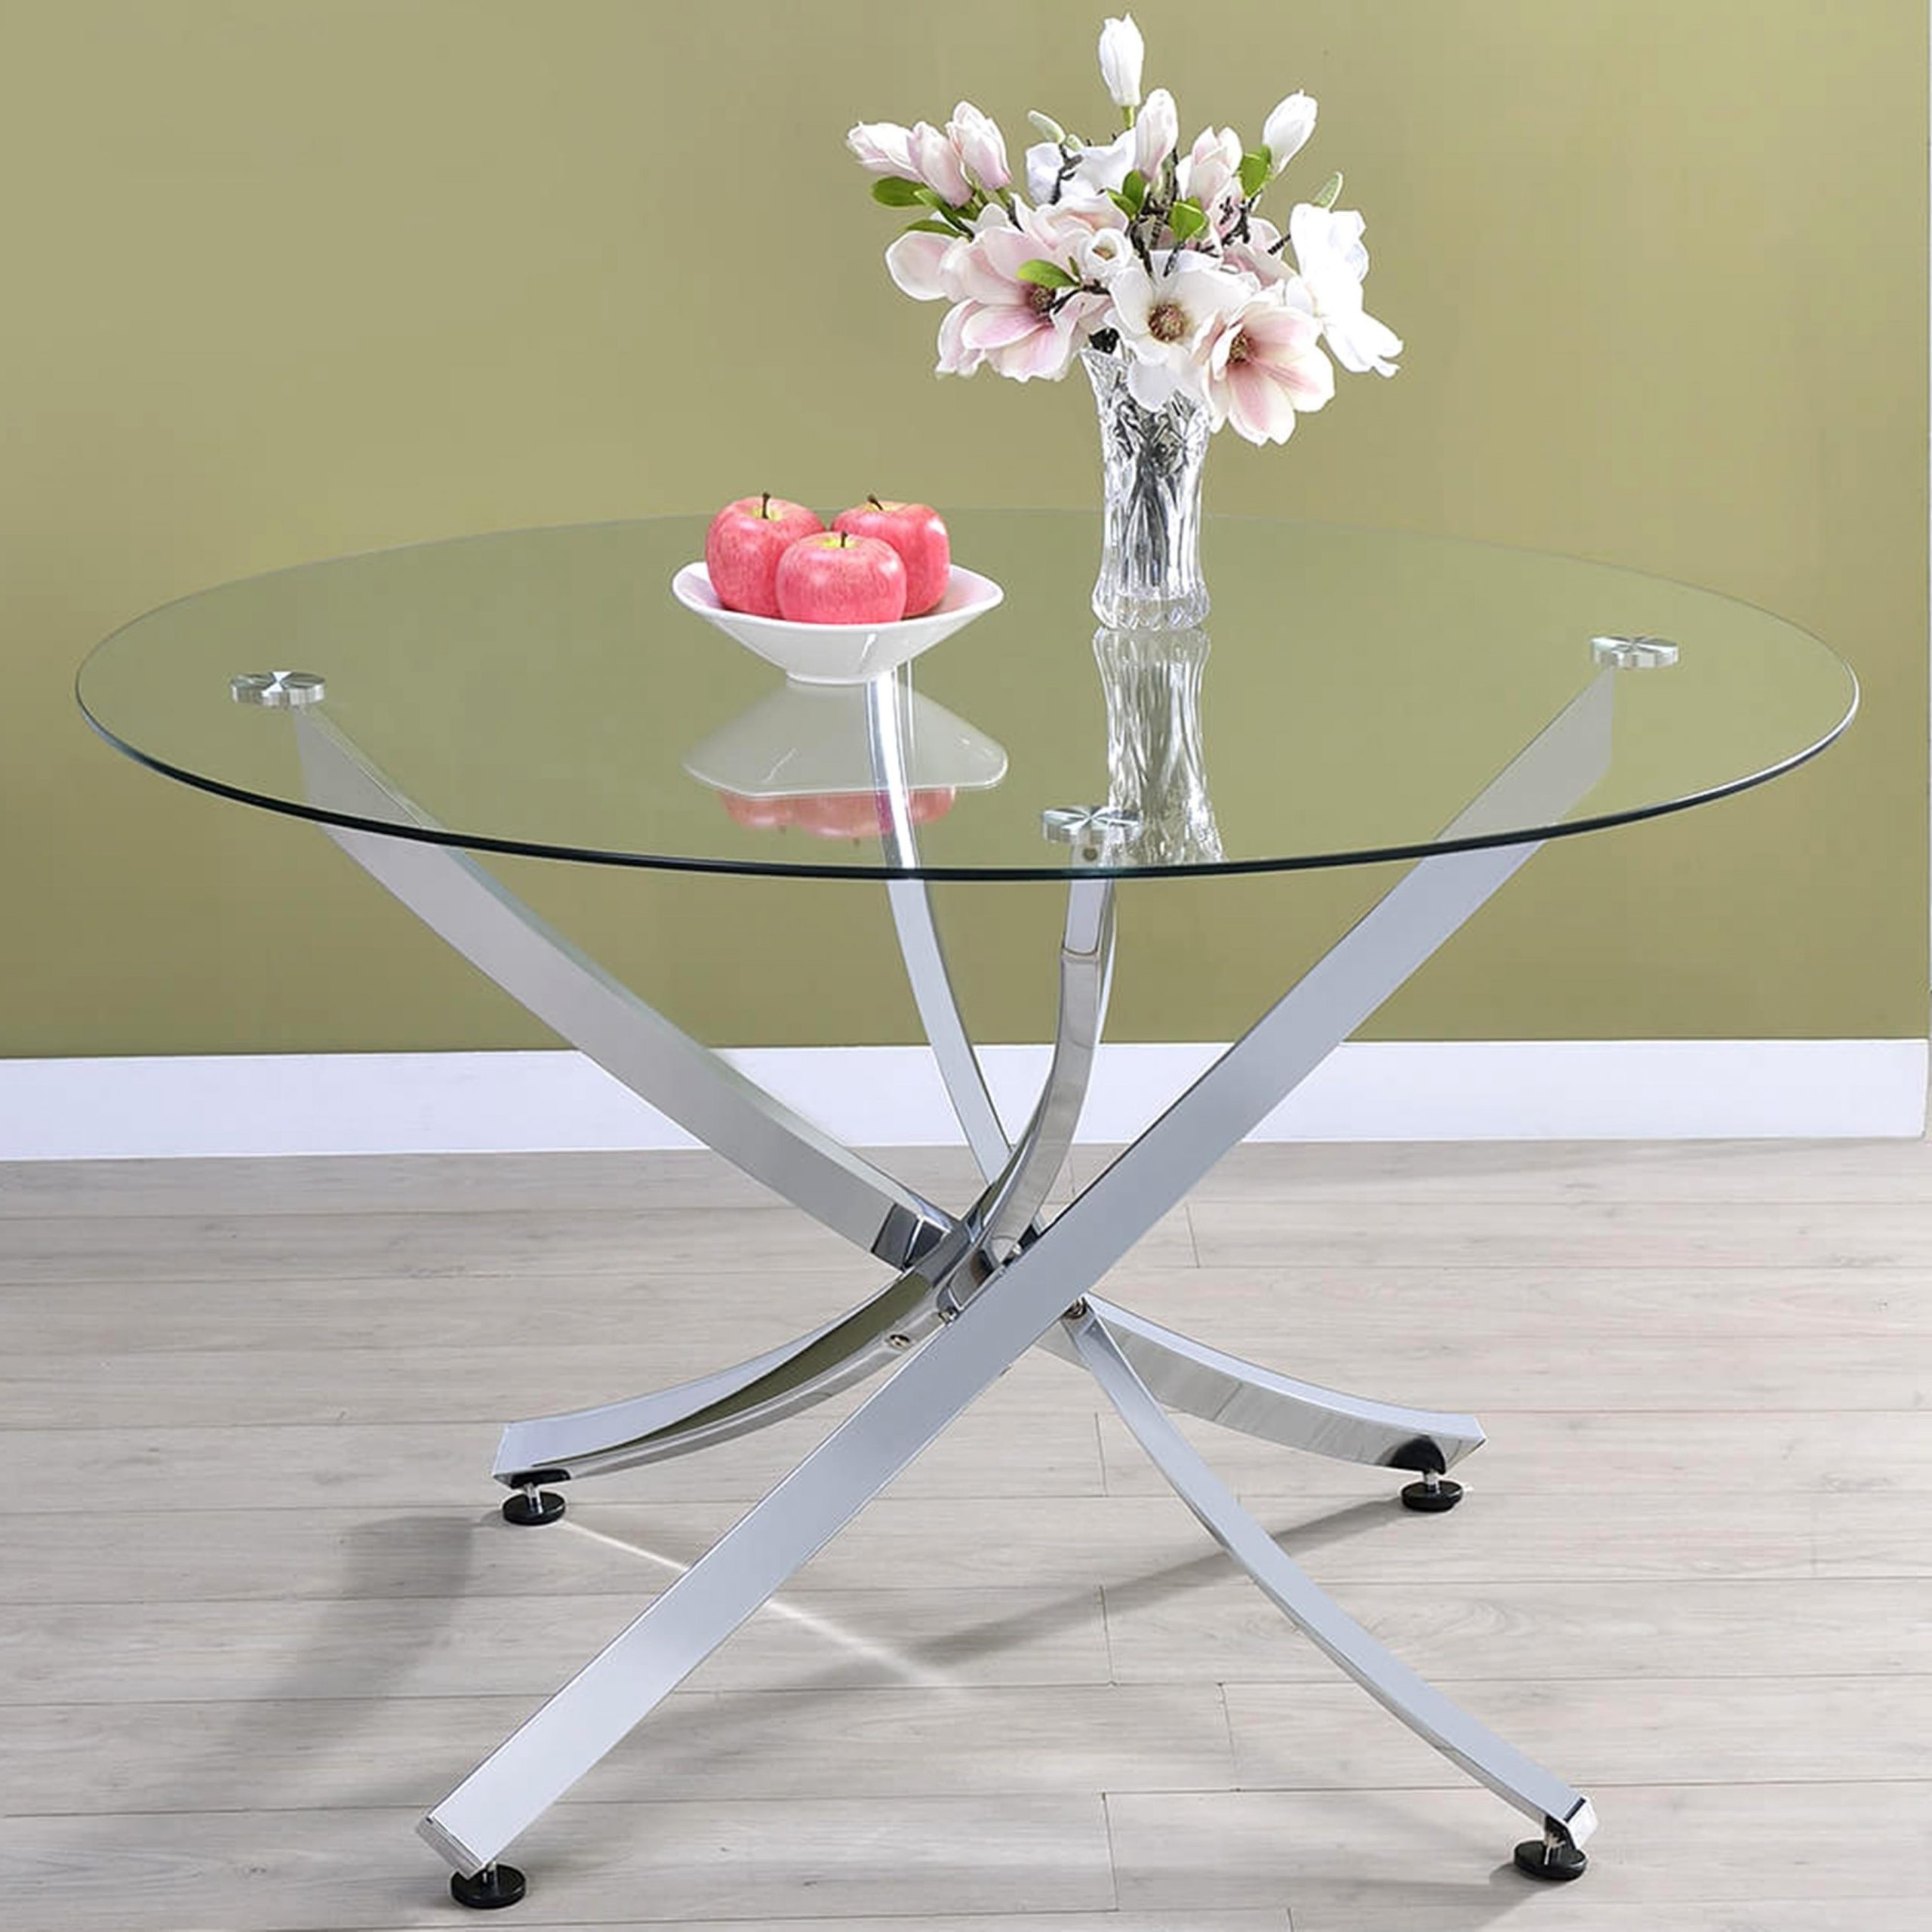 Chrome Dining Tables With Tempered Glass With 2020 Modern Chrome Artistic Design Round Dining Table With Tempered Glass Top (View 15 of 25)